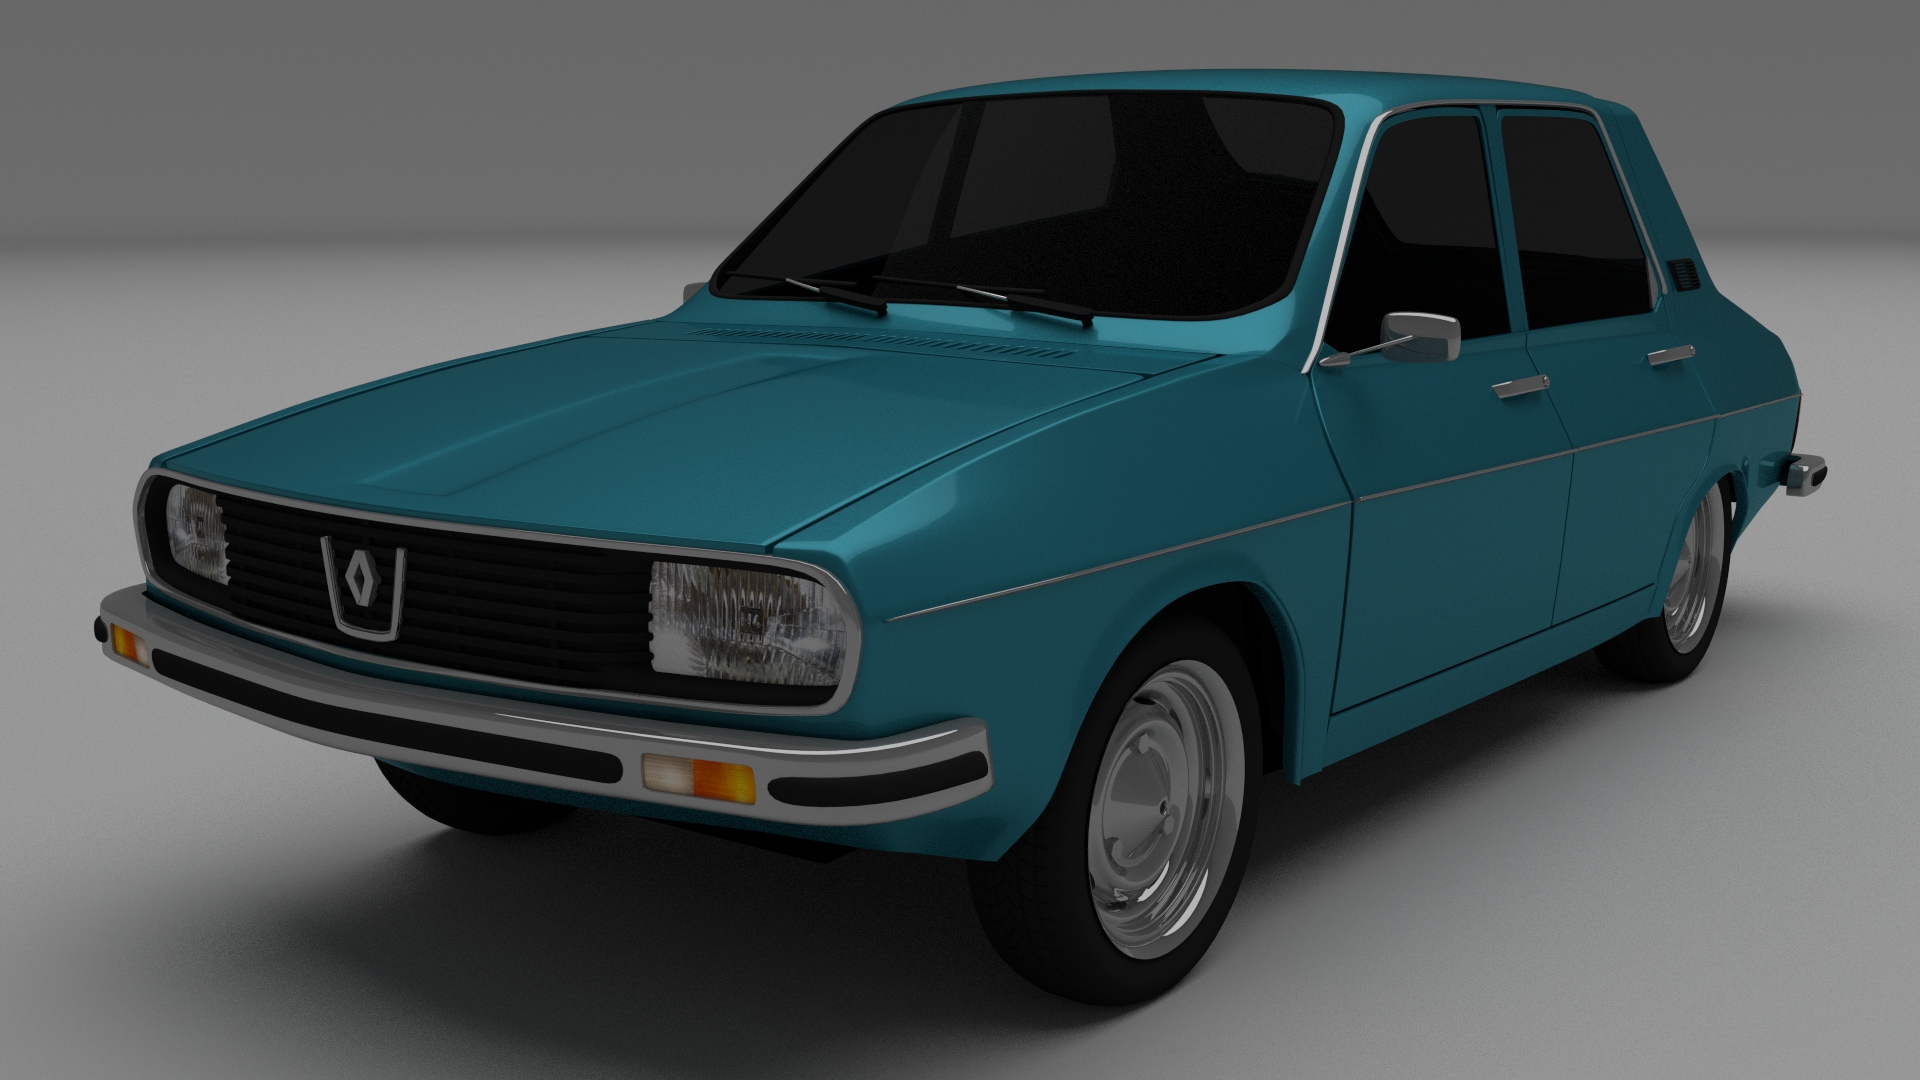 Dacia 1300 Renault 12 Pack 3d Model Blend Dae Mtl